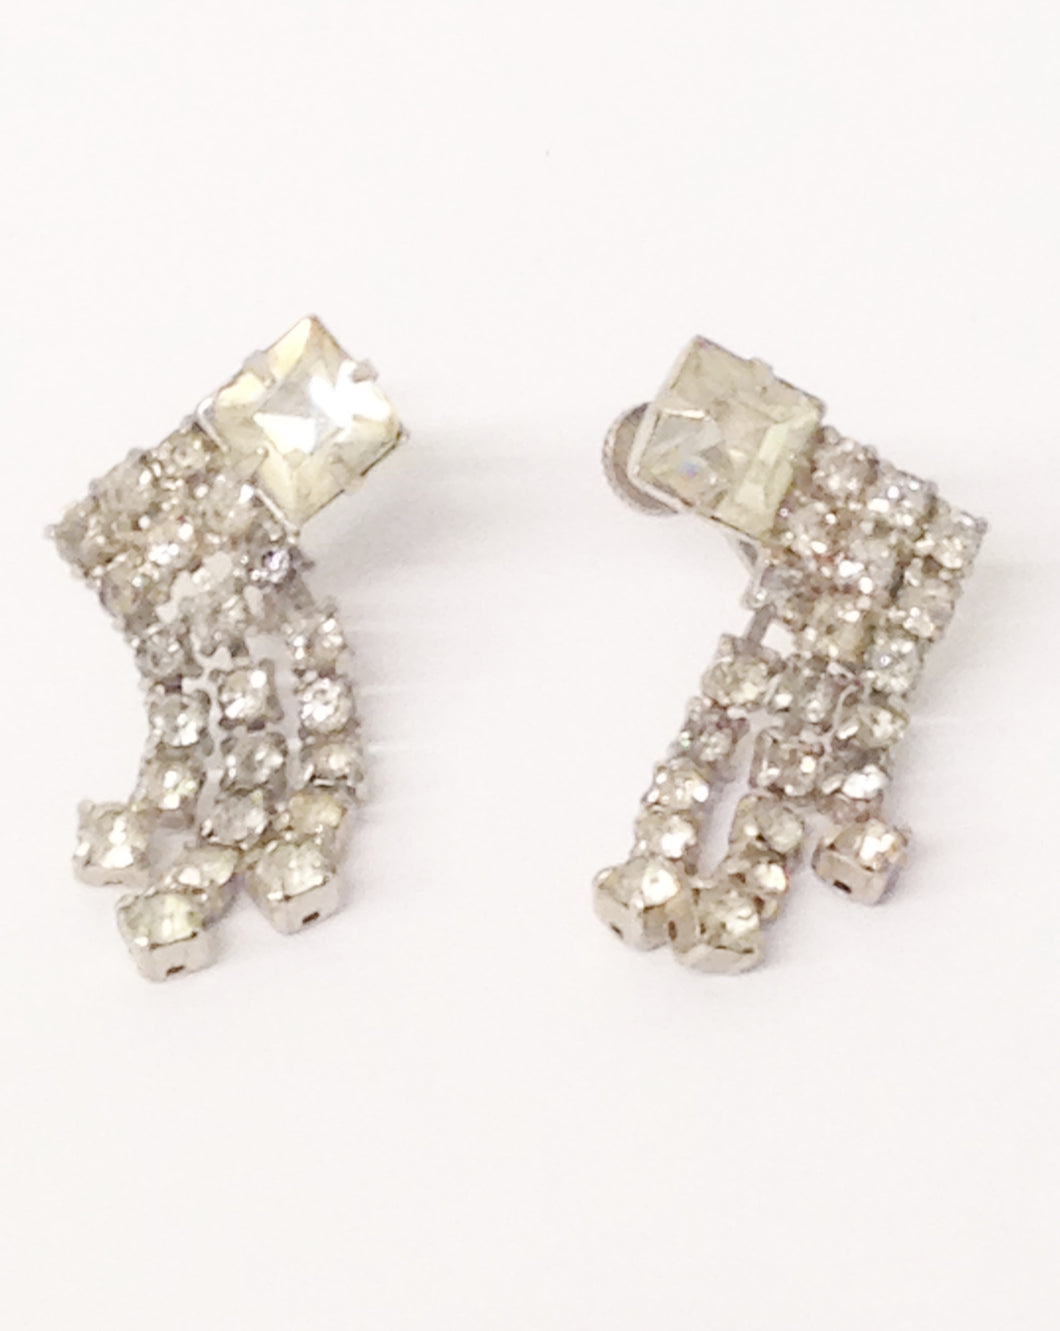 Antique 1900's Art Deco Clear Rhinestone Screw Back Earrings www.hersandhistreasures.com